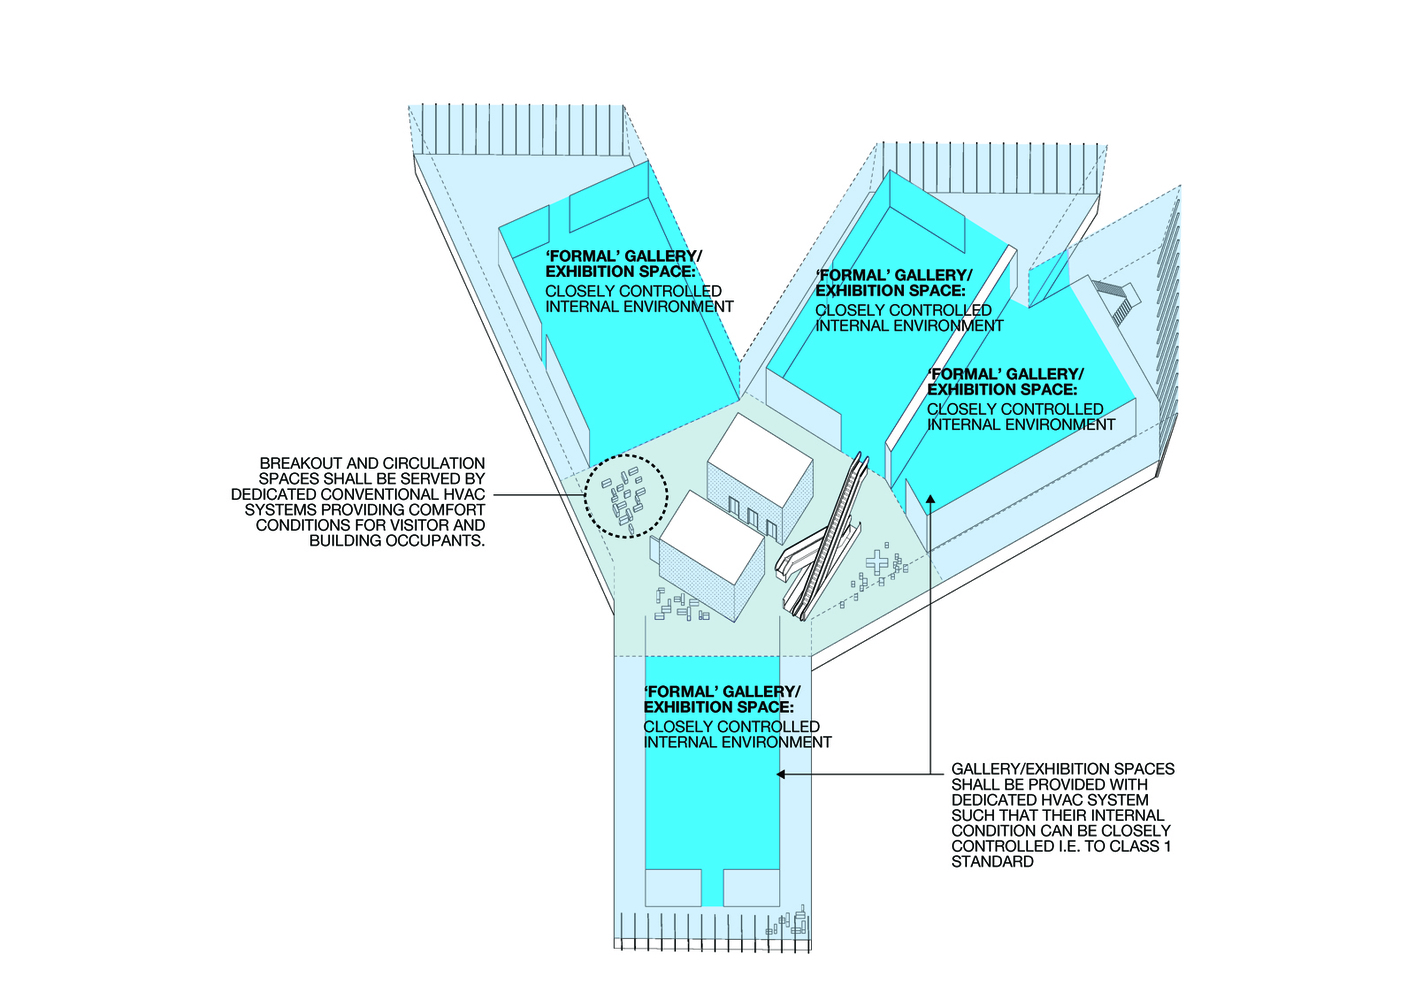 new taipei city museum of art proposal lyons hvac gallery compartments diagram [ 1415 x 1000 Pixel ]